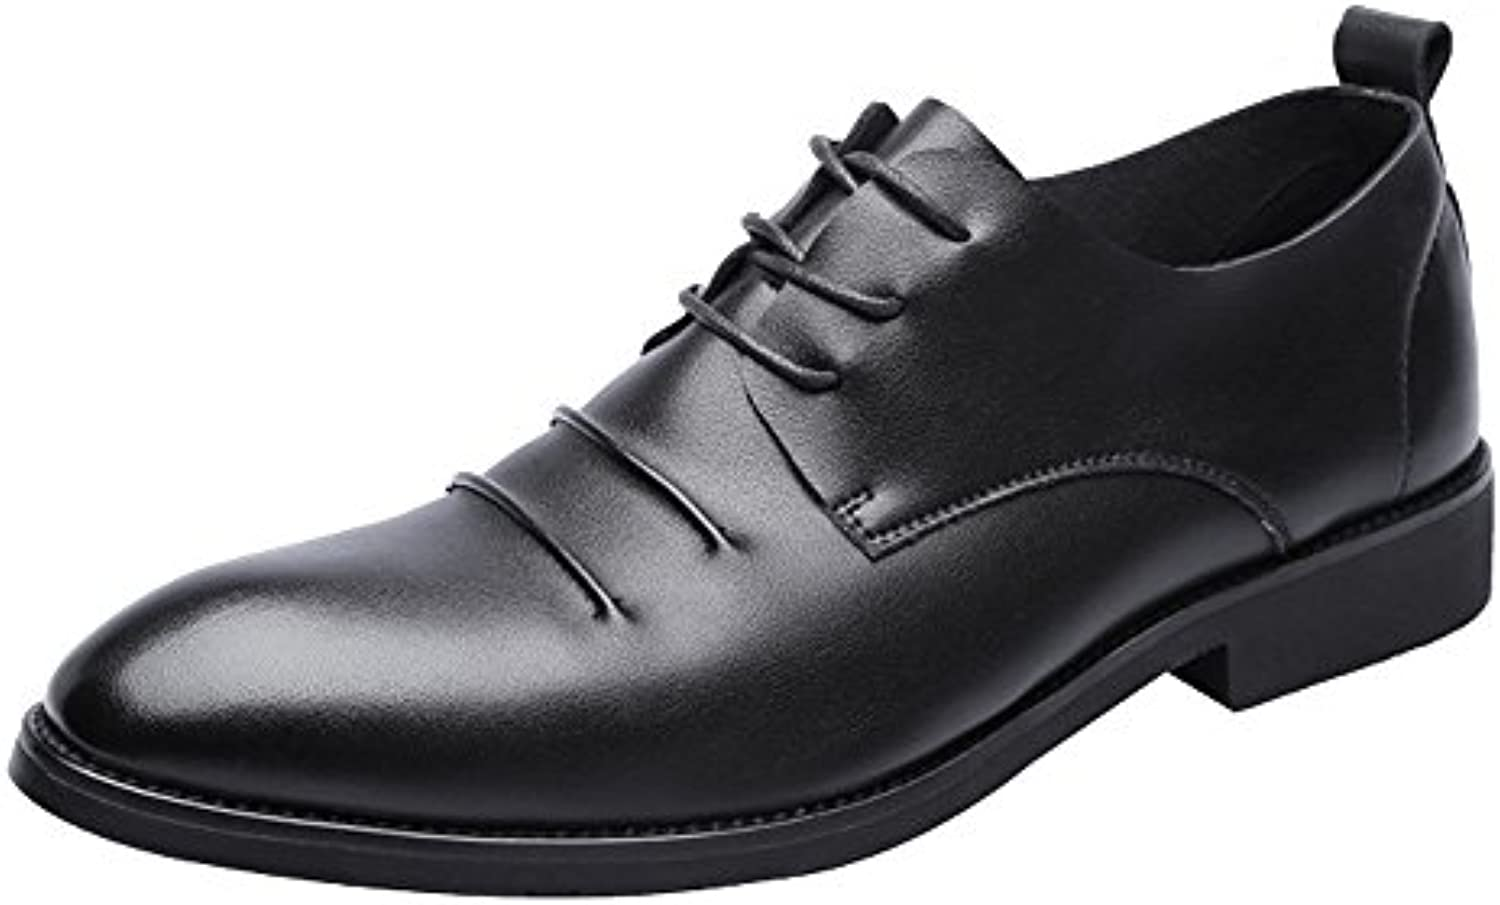 Yaojiaju Herrenschuhe Casual Matte PU Leder Slipper Lace up Breathable Spitz Toe Oxfords Schwarz